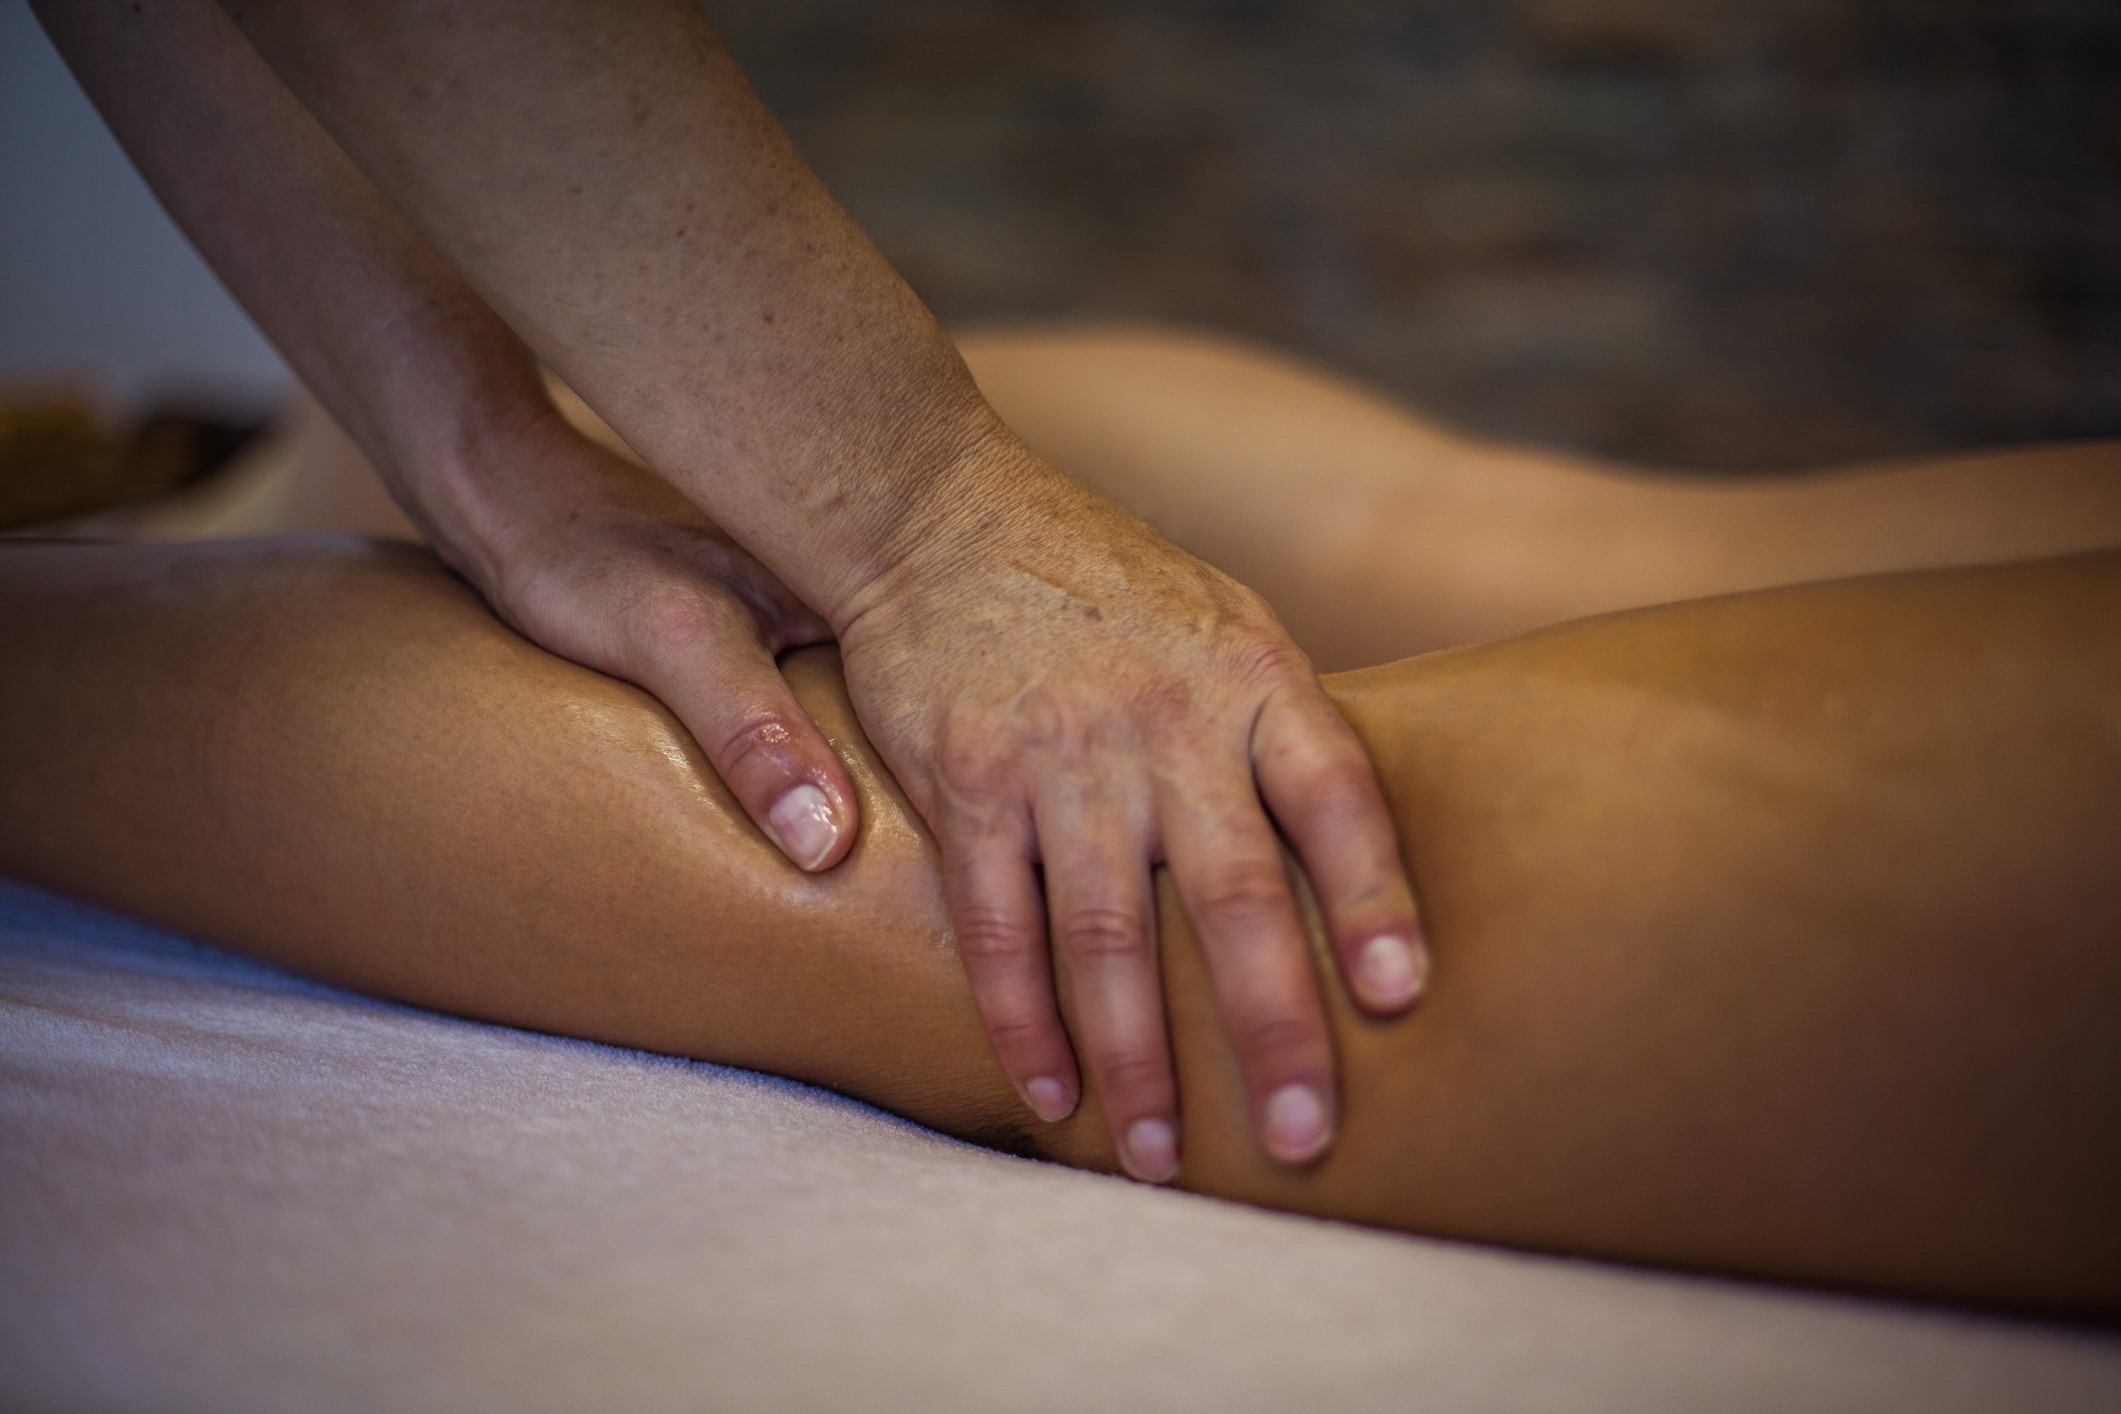 Massage Services in Washington, DC